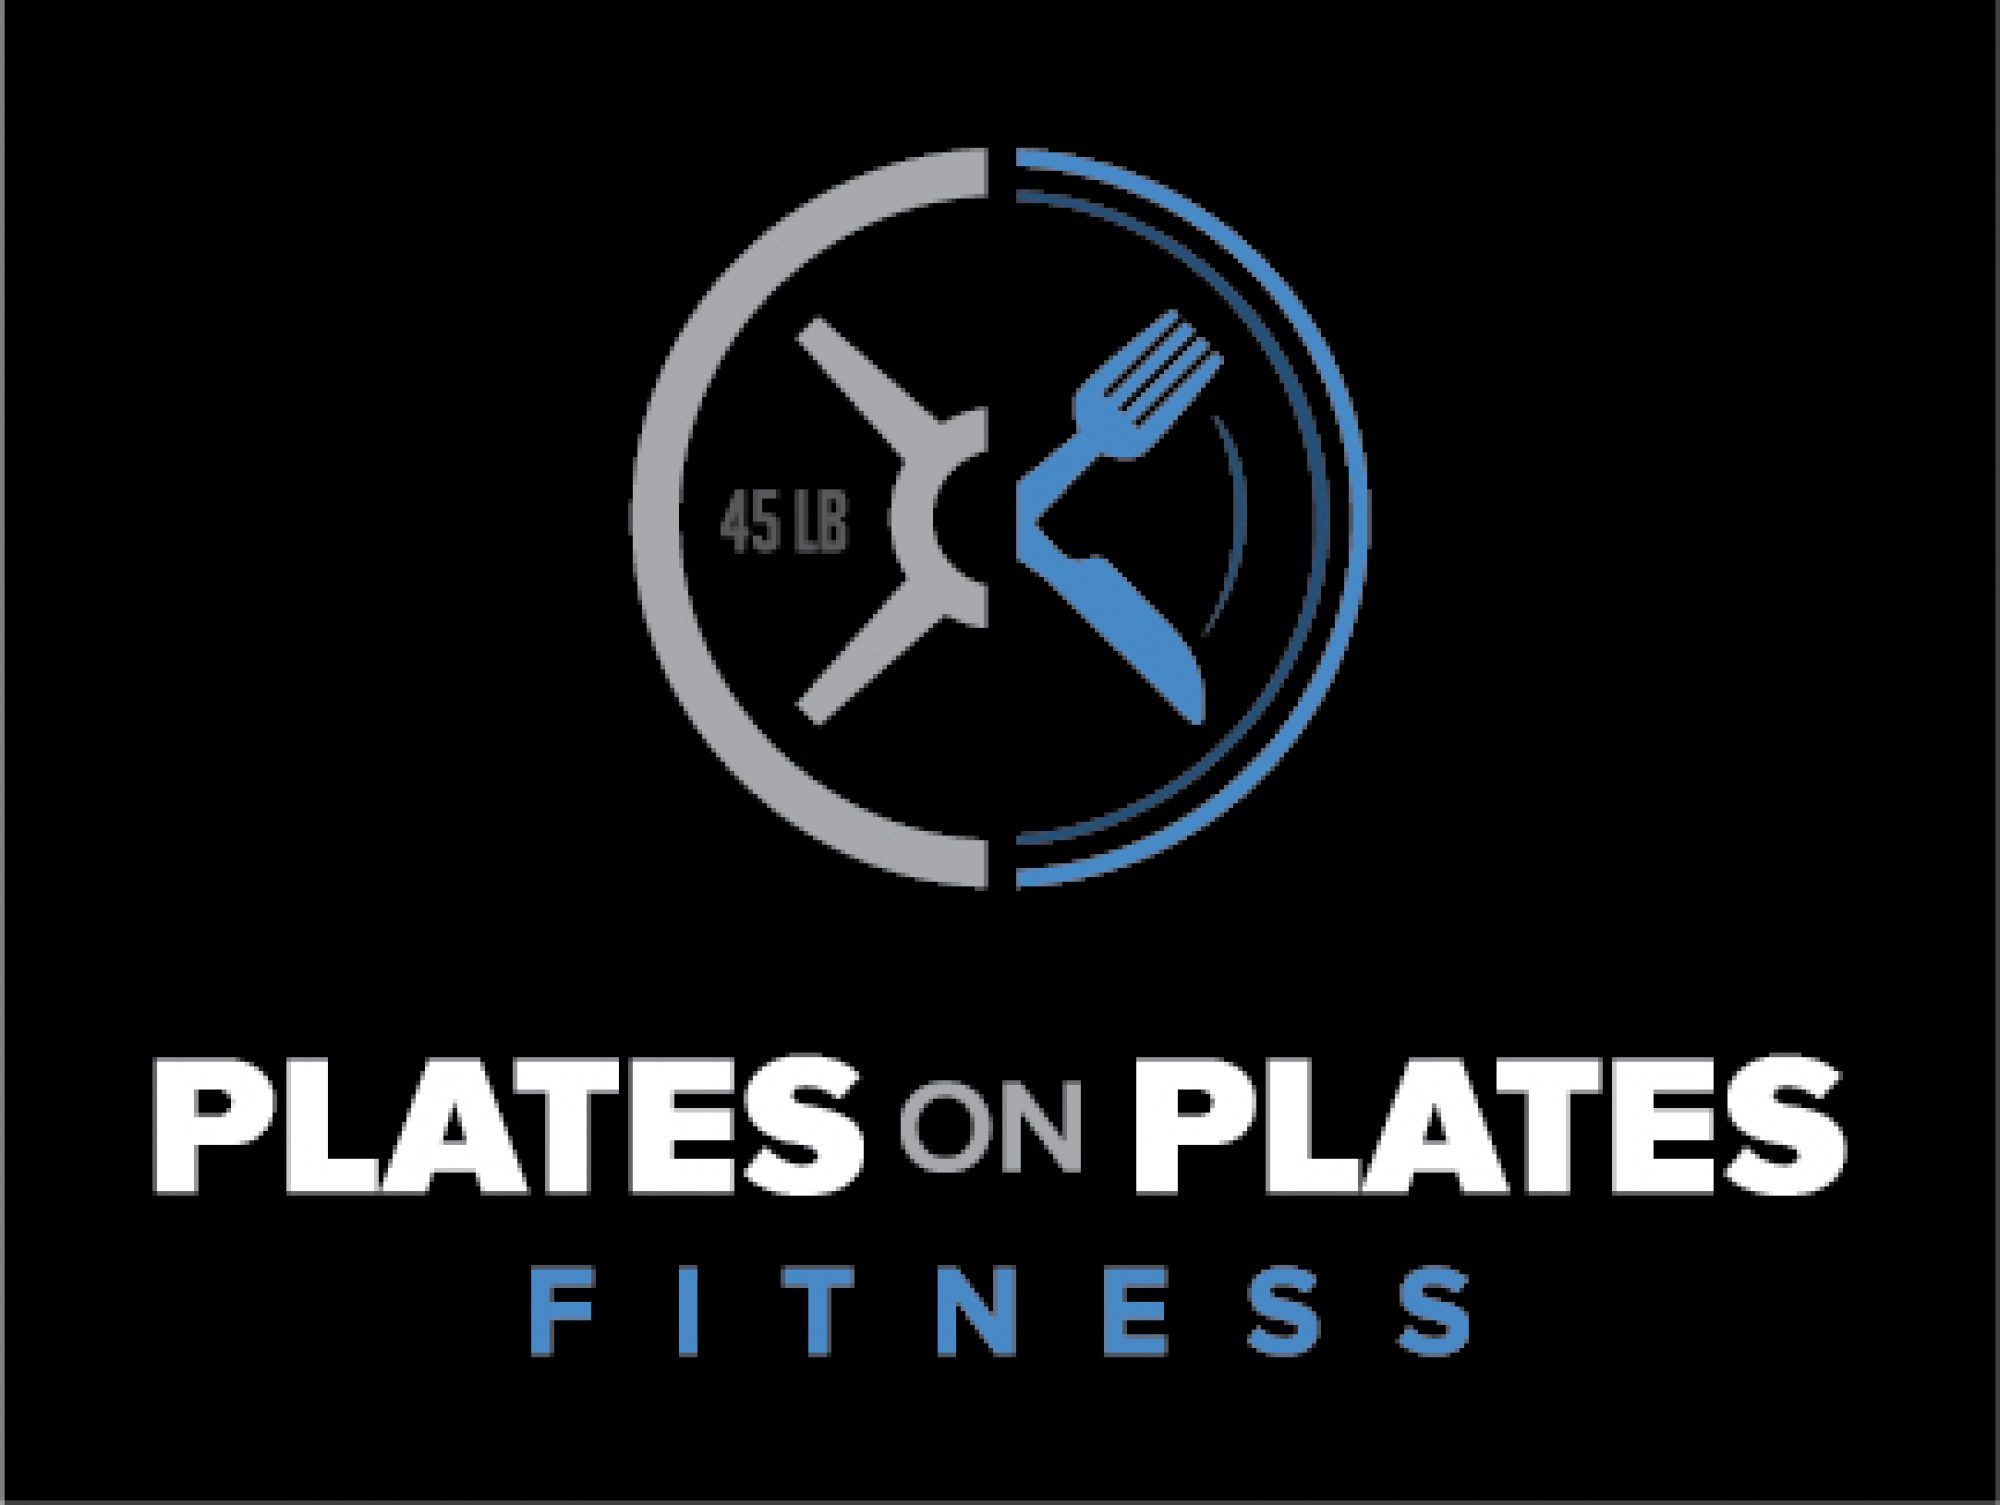 Plates on Plates Fitness